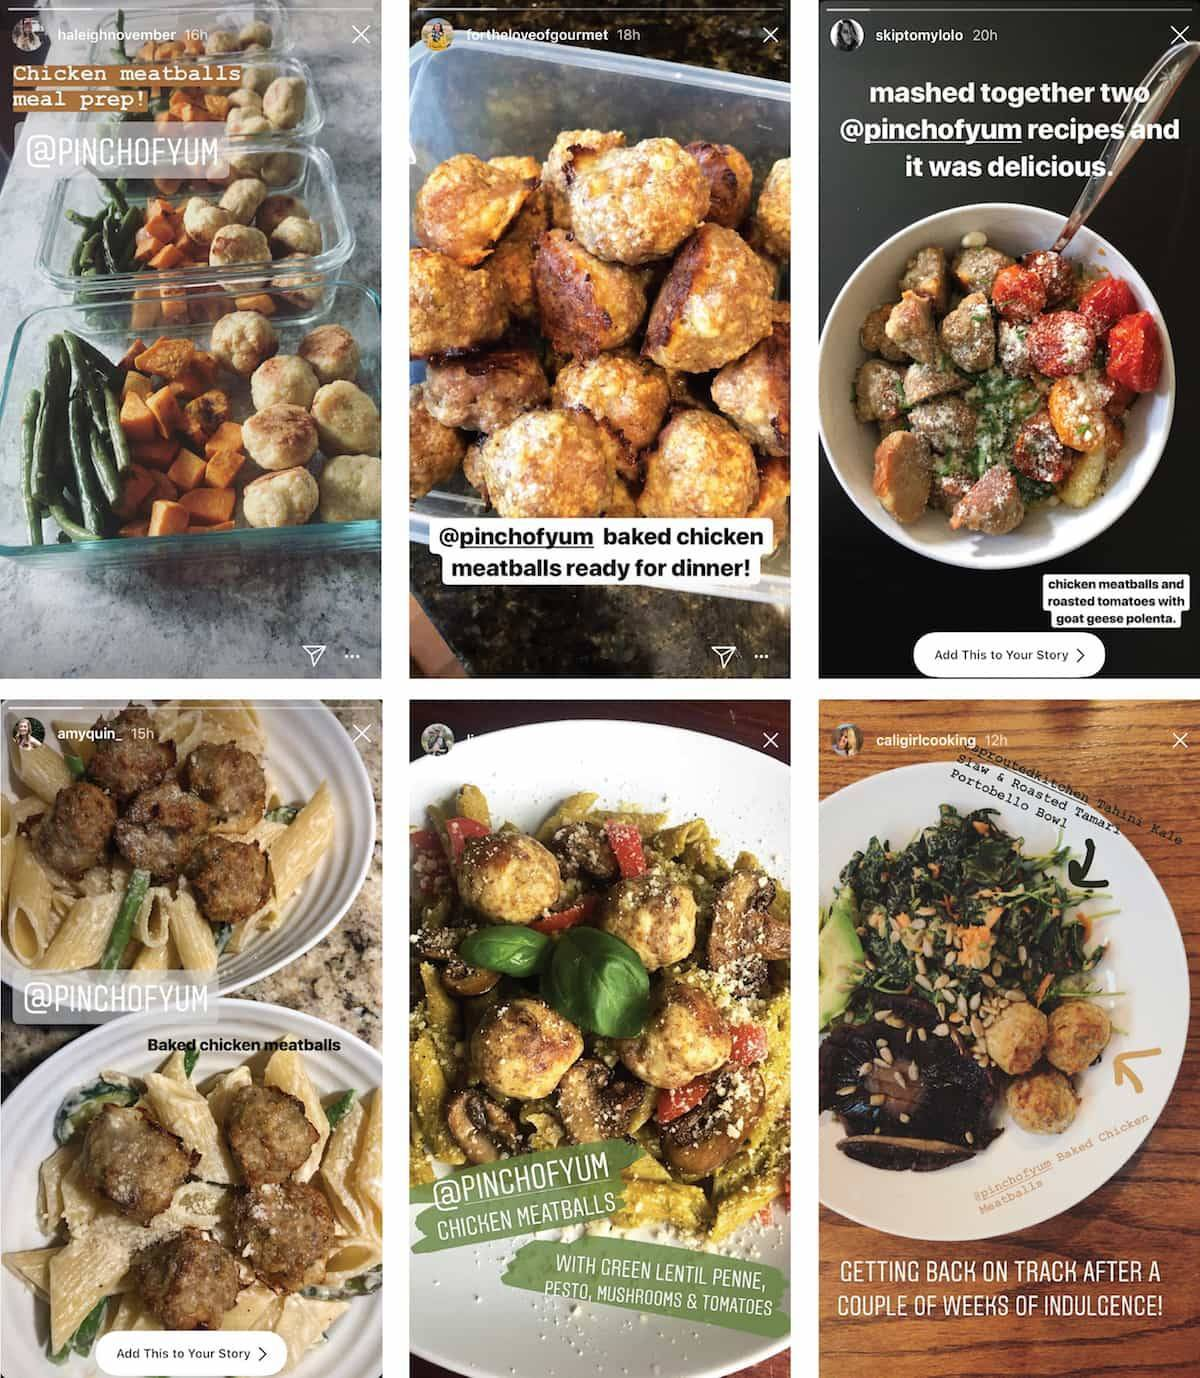 Collage of user generated content showing readers' images of baked chicken meatballs.